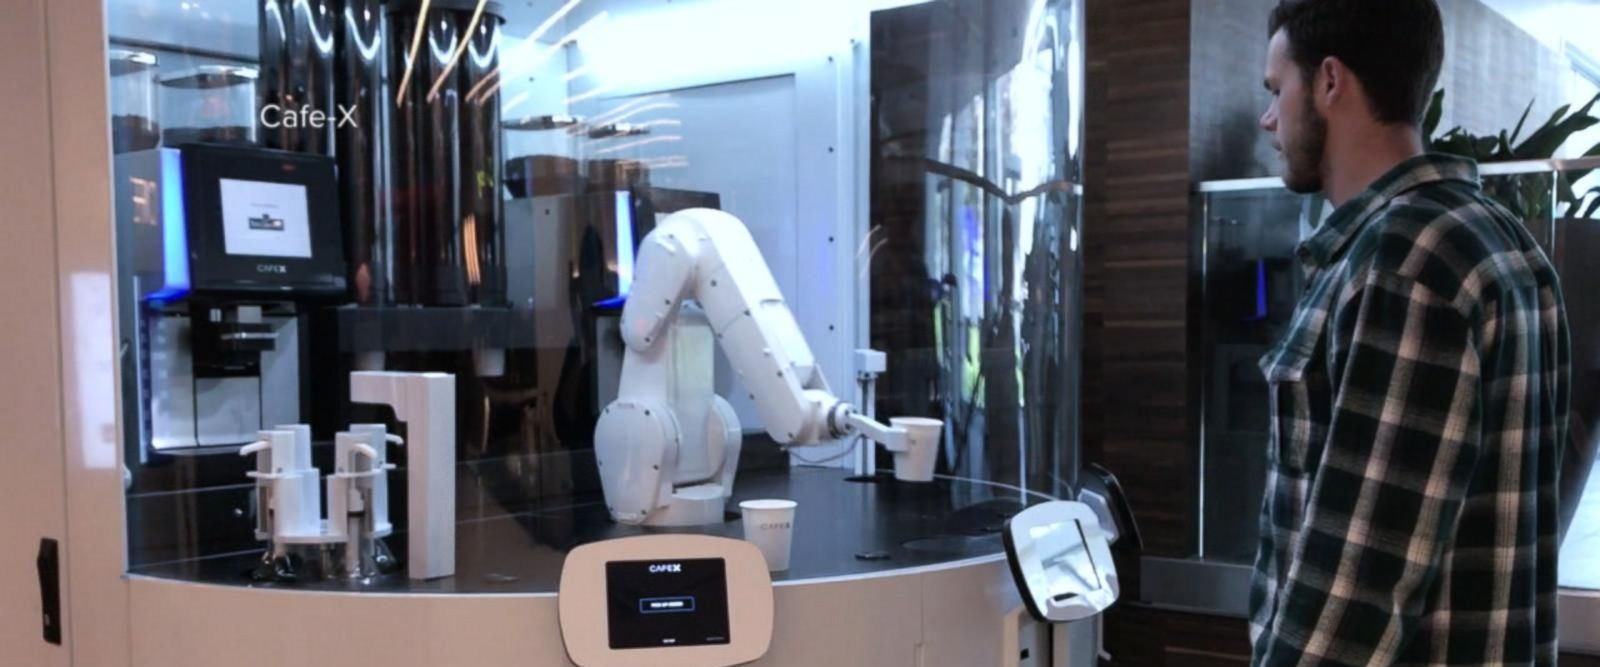 VIDEO: Robots could take more than 38 percent of US jobs in 15 years, report claims